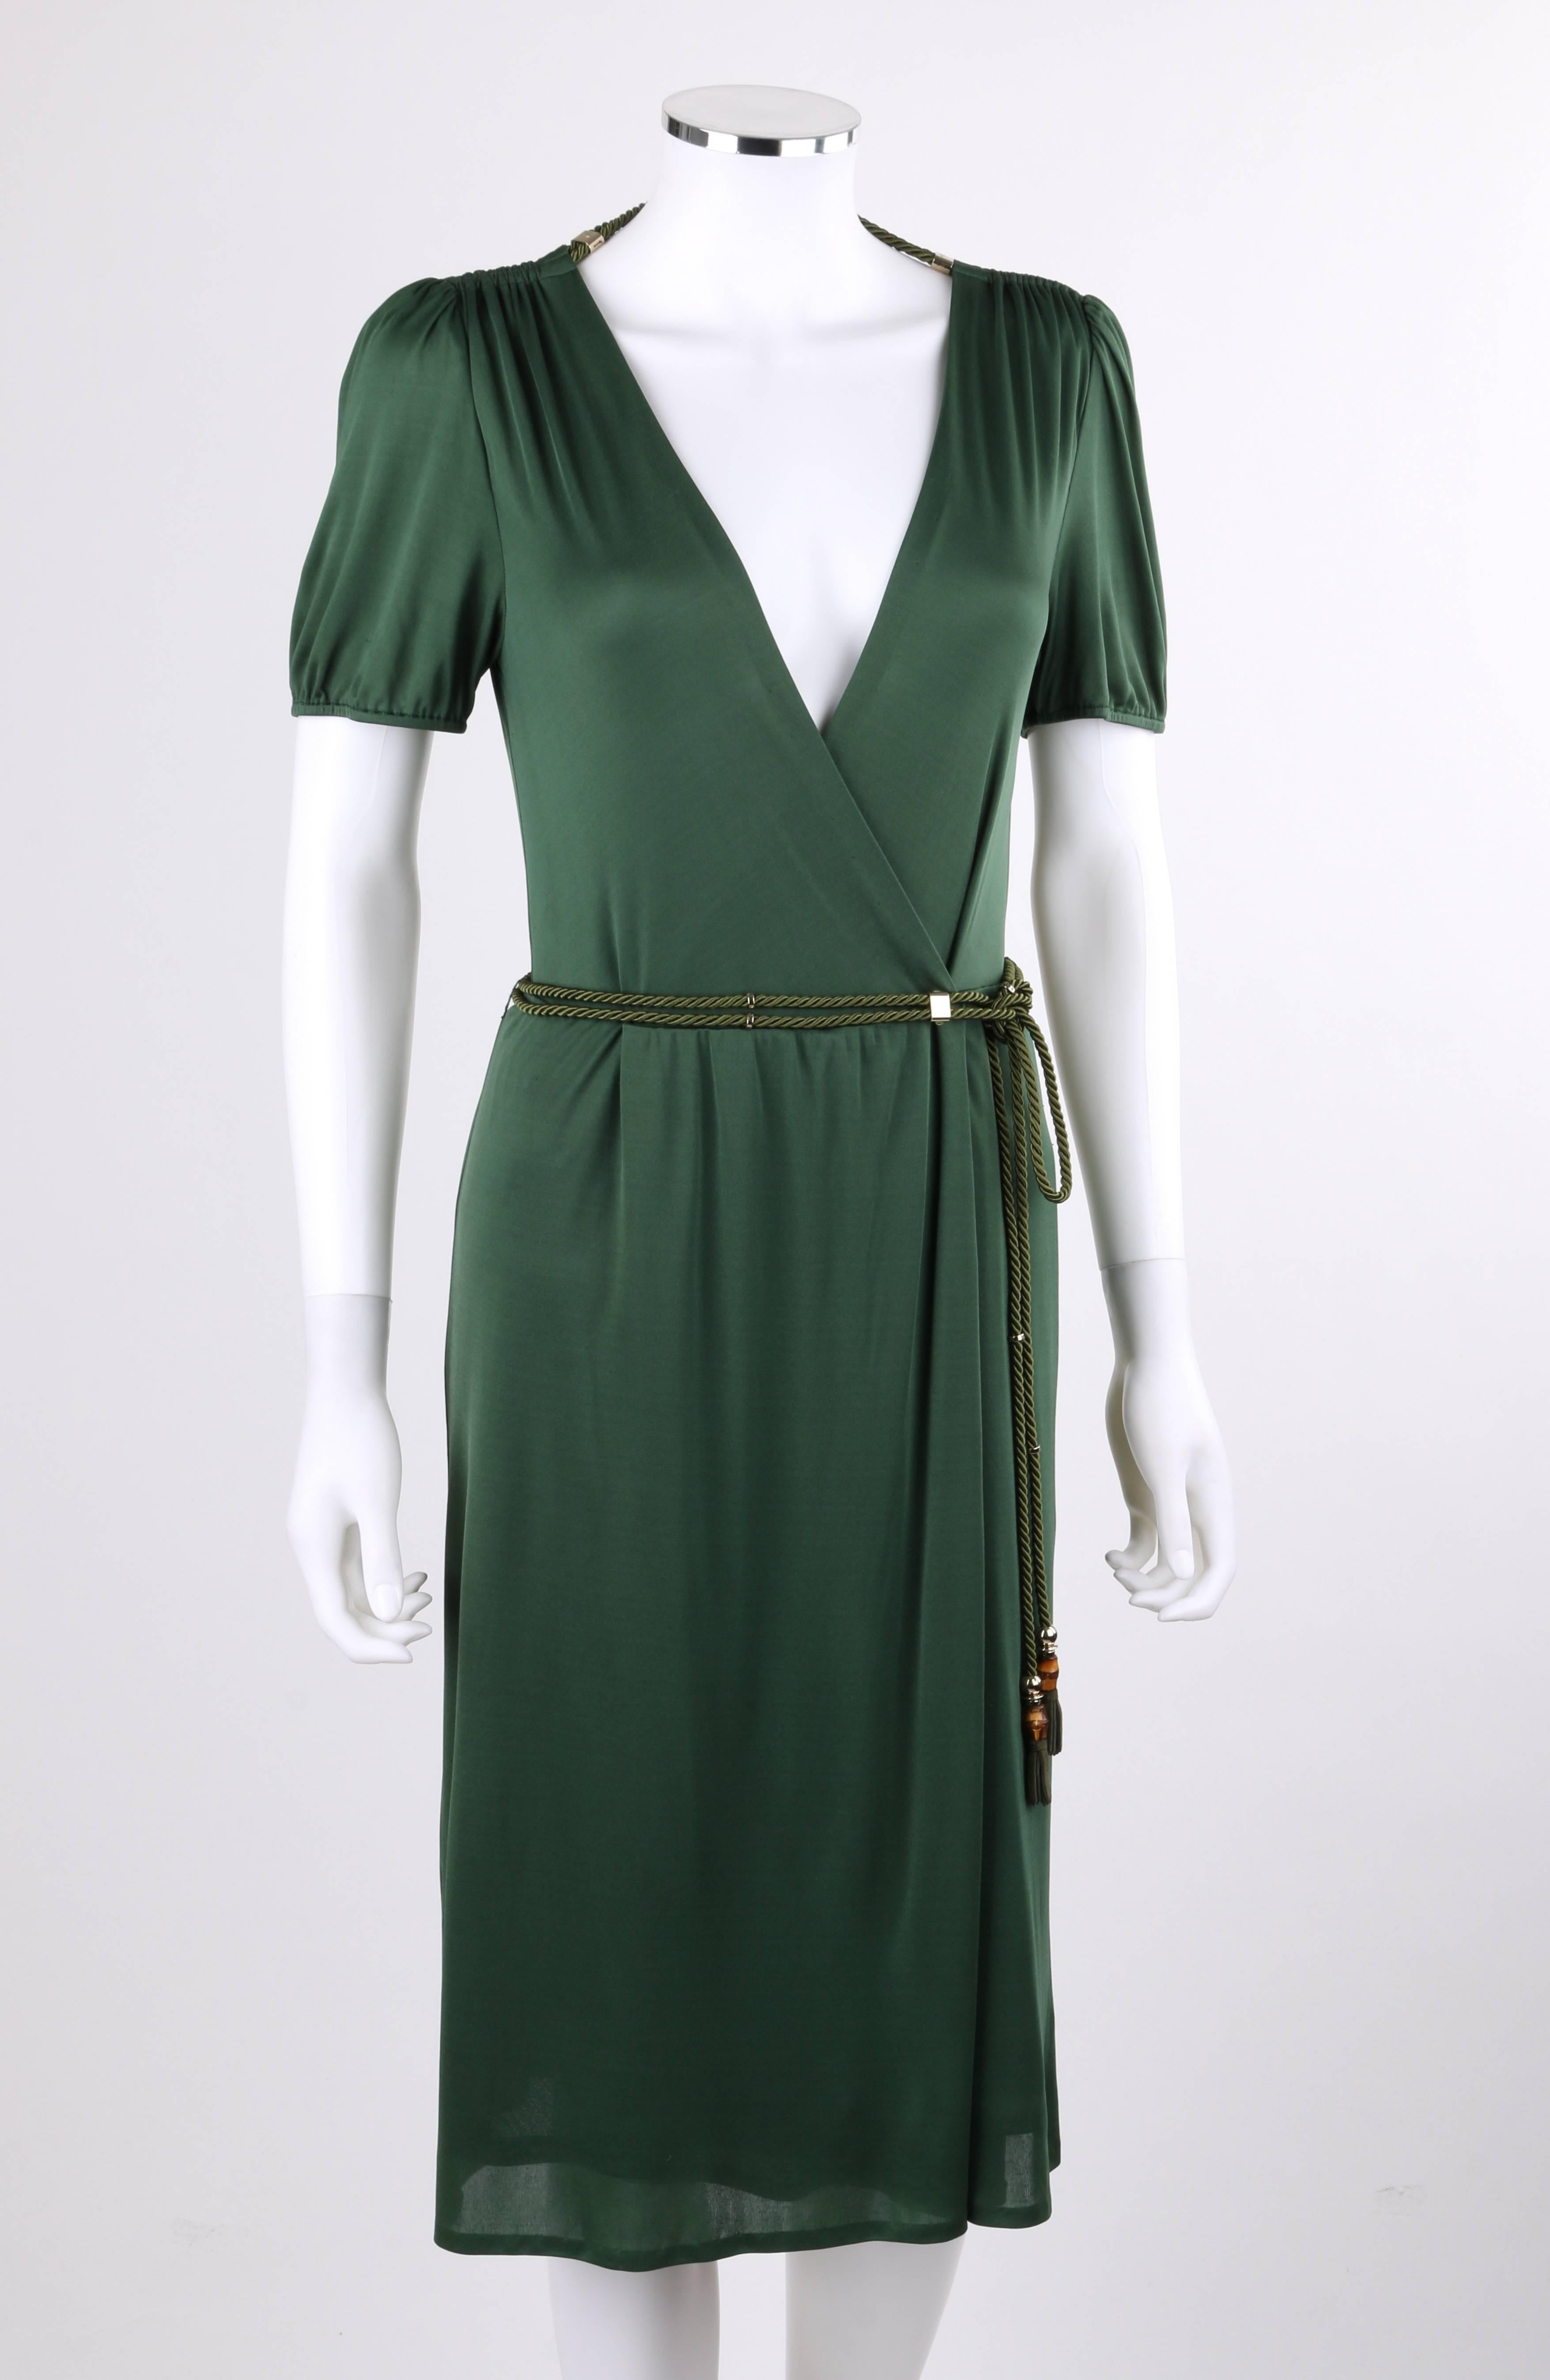 217b387cfb GUCCI Resort 2007 Forest Green Jersey Knit Wrap Cocktail Dress + Rope Belt  NWT For Sale at 1stdibs